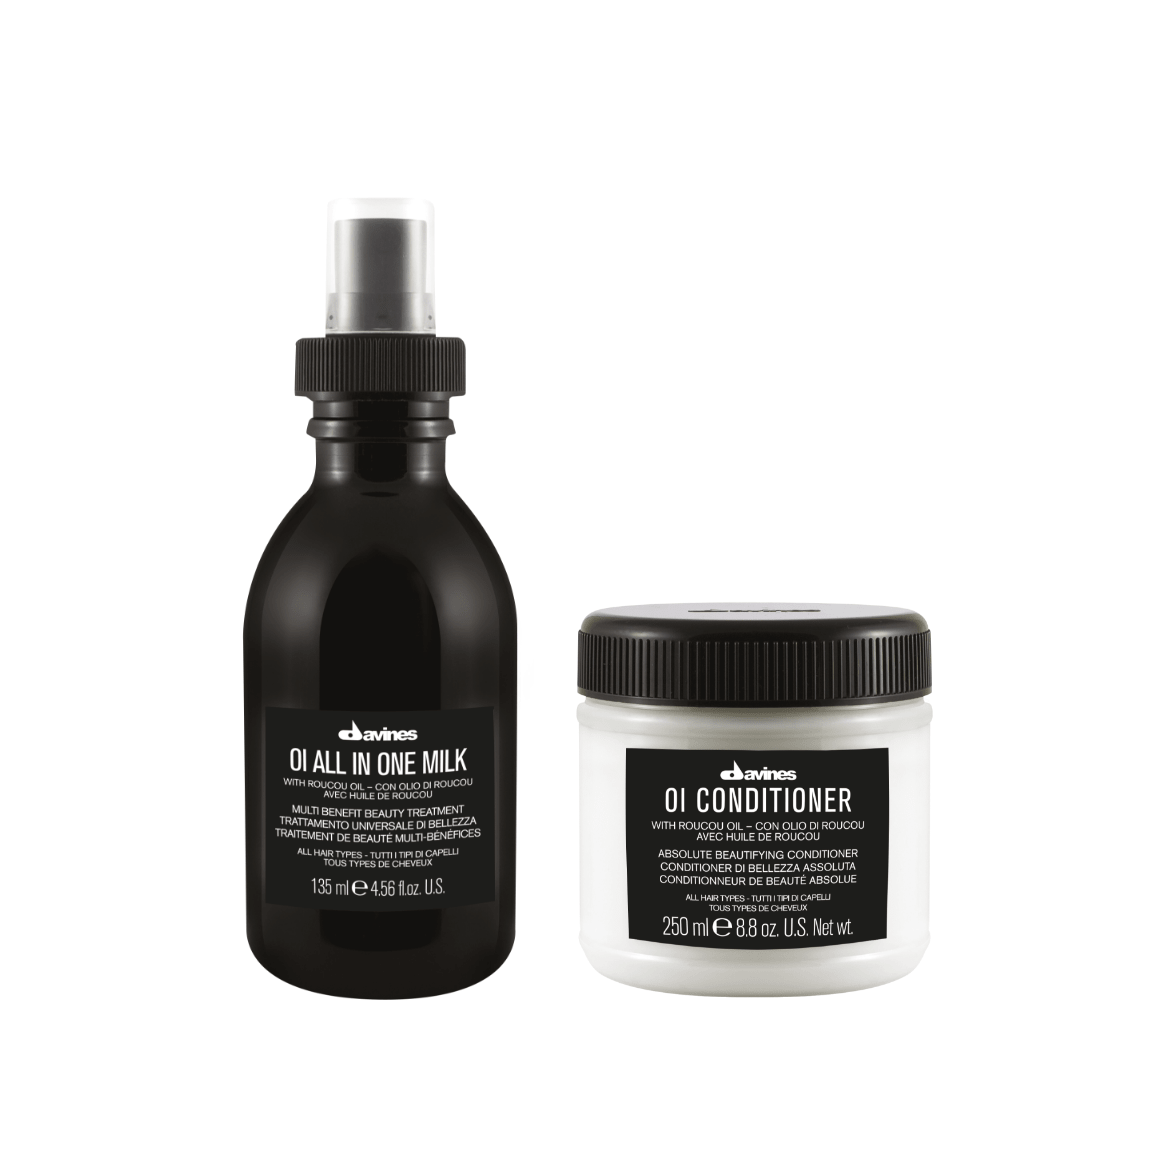 Davines OI All In One Milk & OI Conditioner